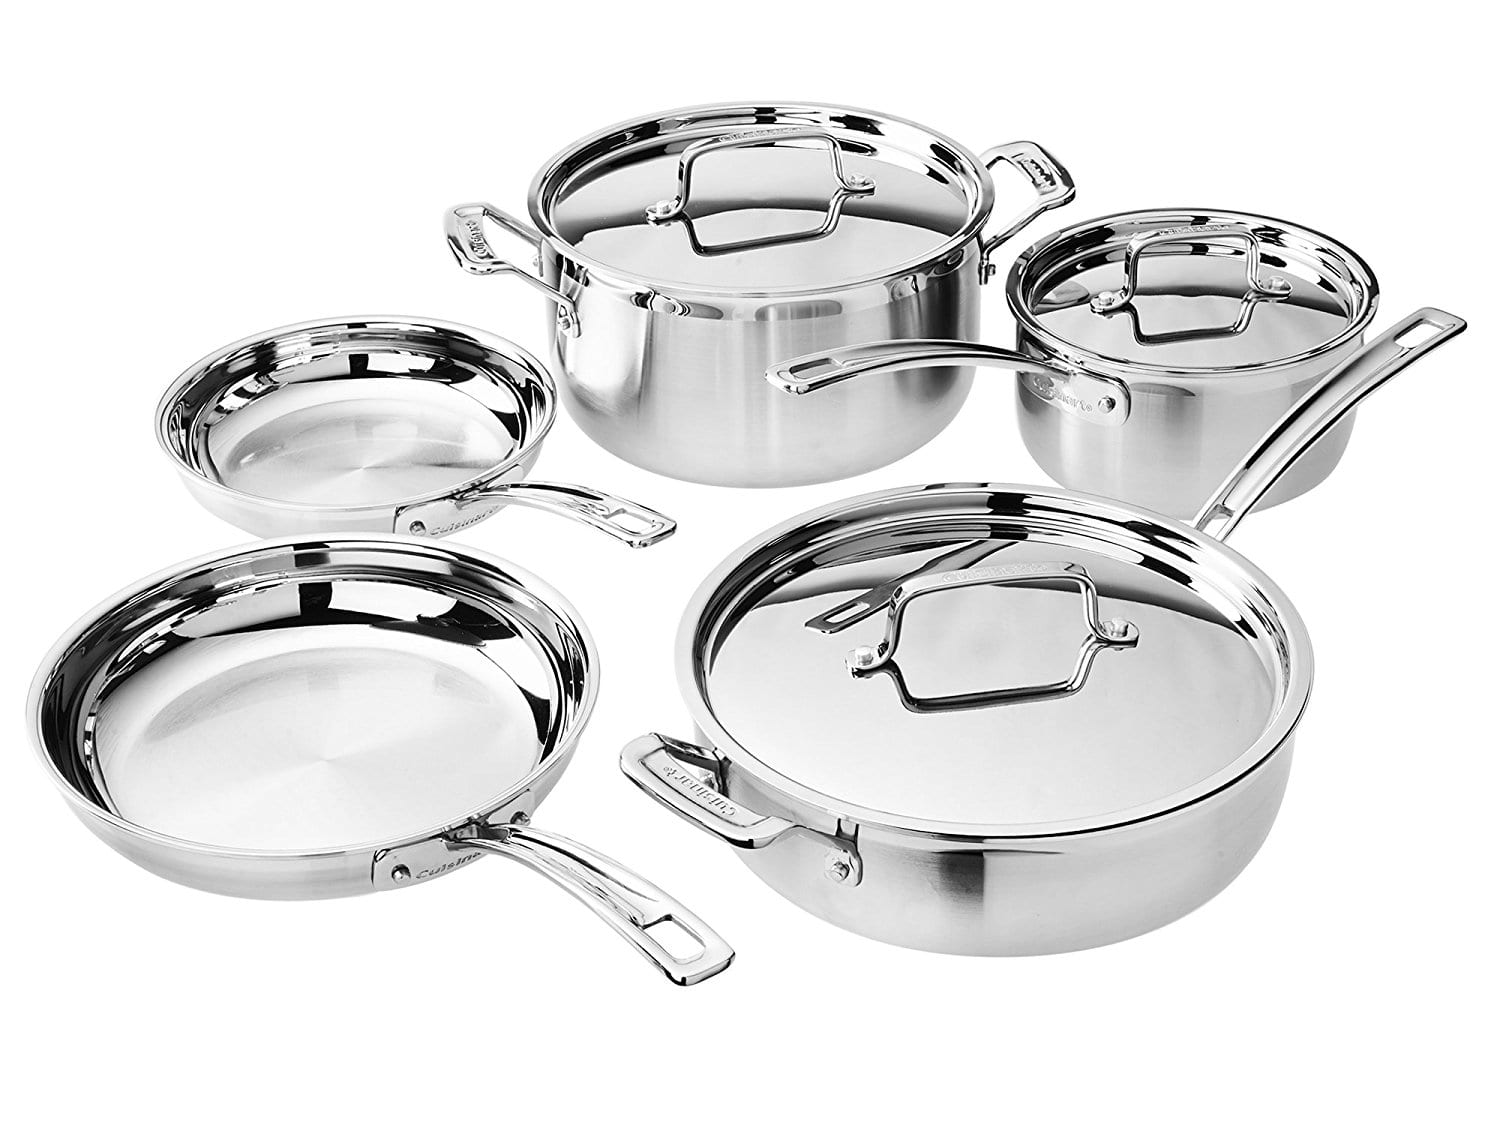 8-Piece Cuisinart MultiClad Pro Cookware Set (MCP-8NW) $139.99 + Free Shipping via Amazon